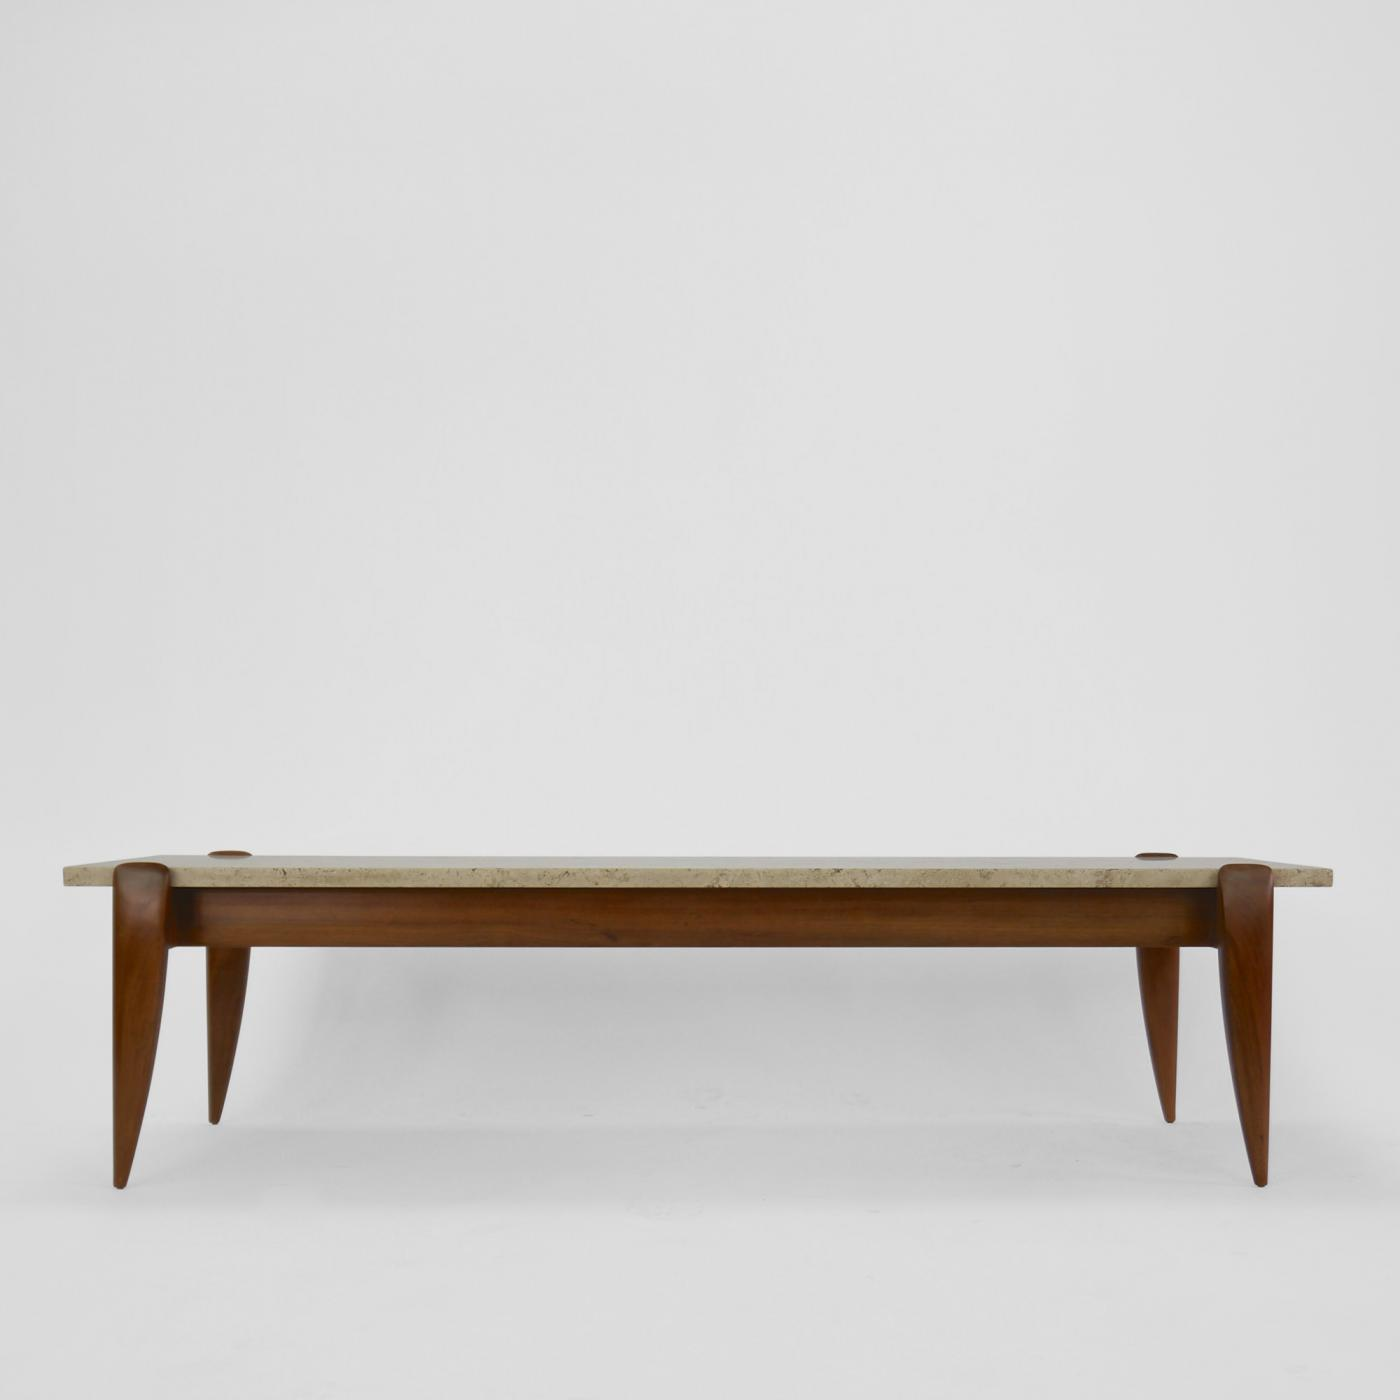 Gio ponti gio ponti travertine coffee table for singer and sons listings furniture tables coffee tables geotapseo Image collections